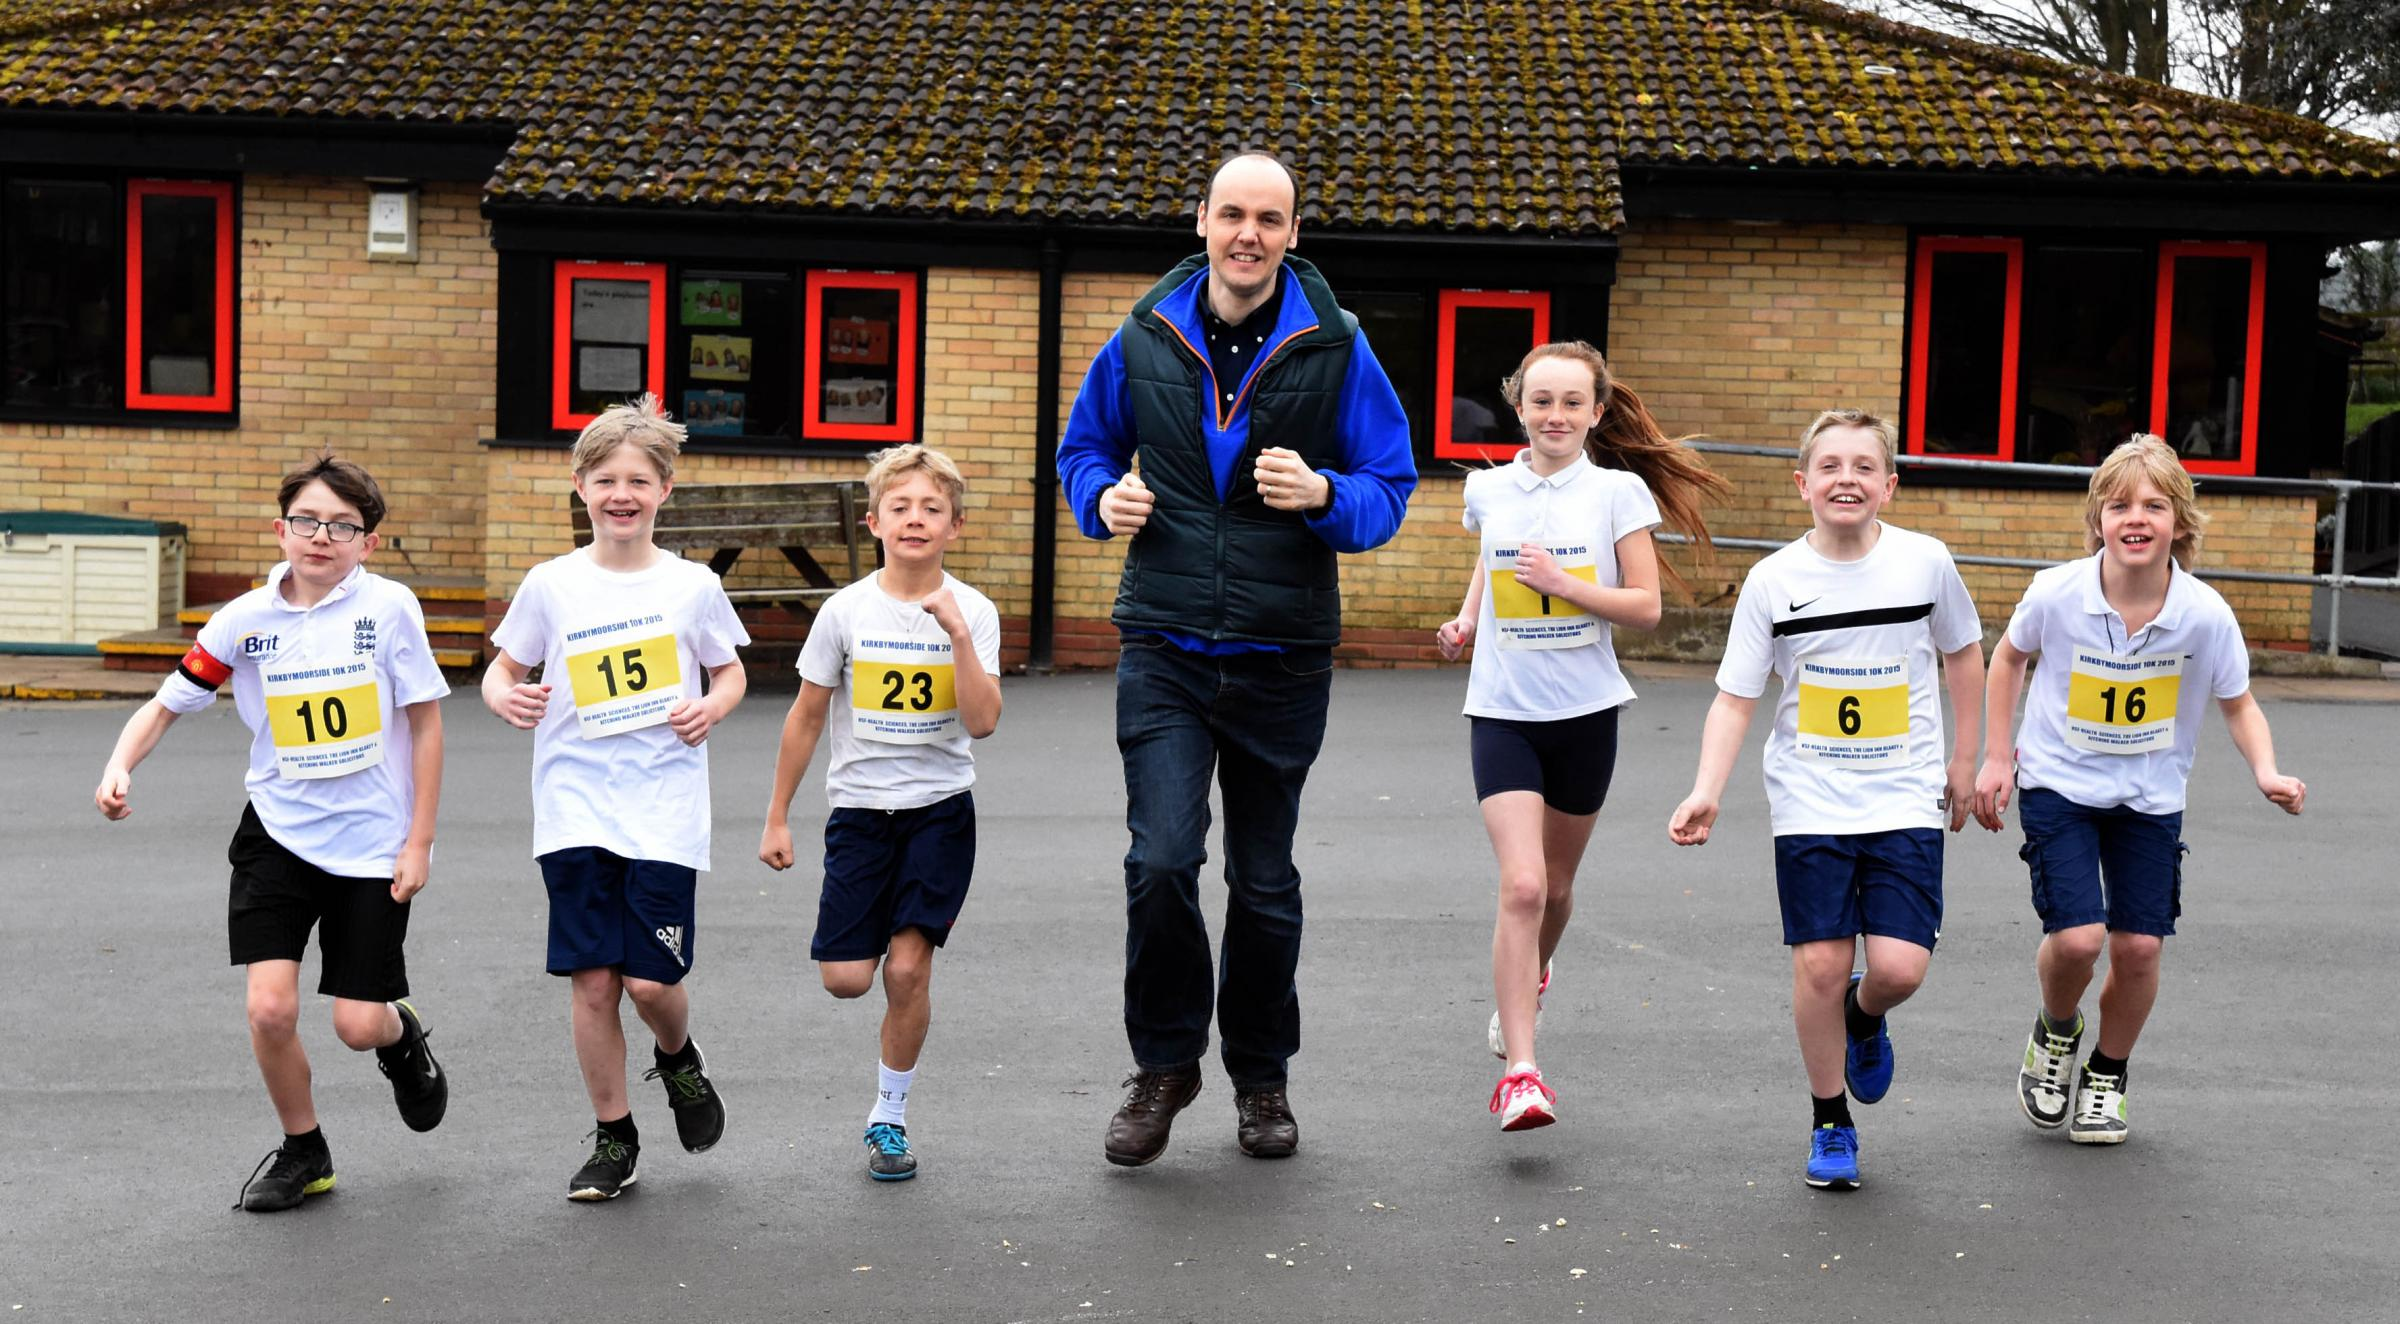 Dave Pearson, Kirkbymoorside 10k race secretary and director, helps pupils at Kirkbymoorside Primary School prepare for annual event in May     Picture: Nigel Holland